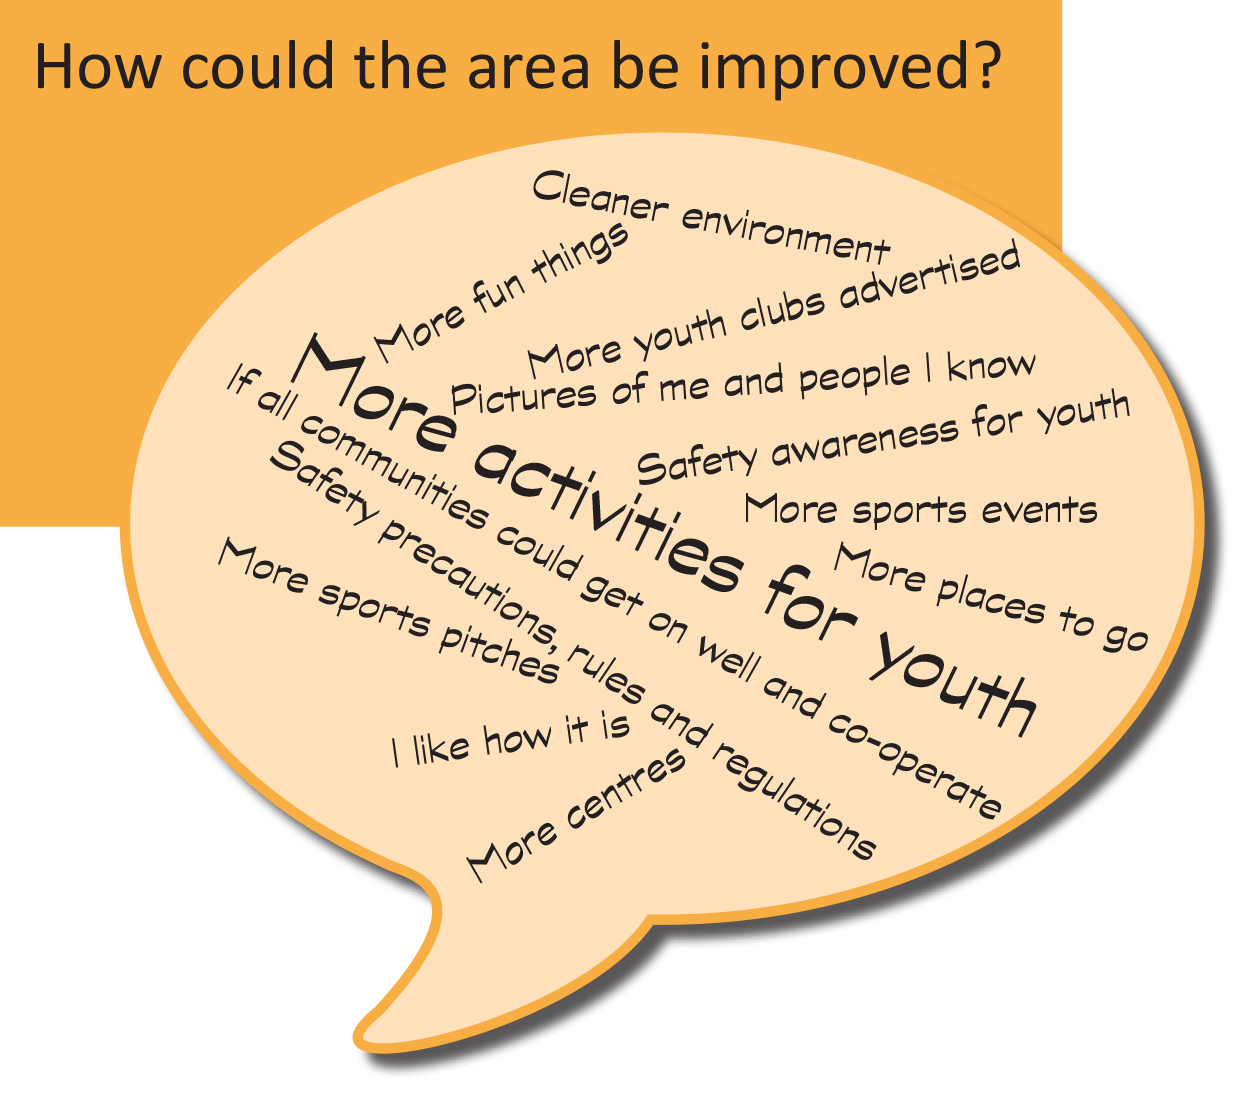 Word cloud: How could the area be improved?